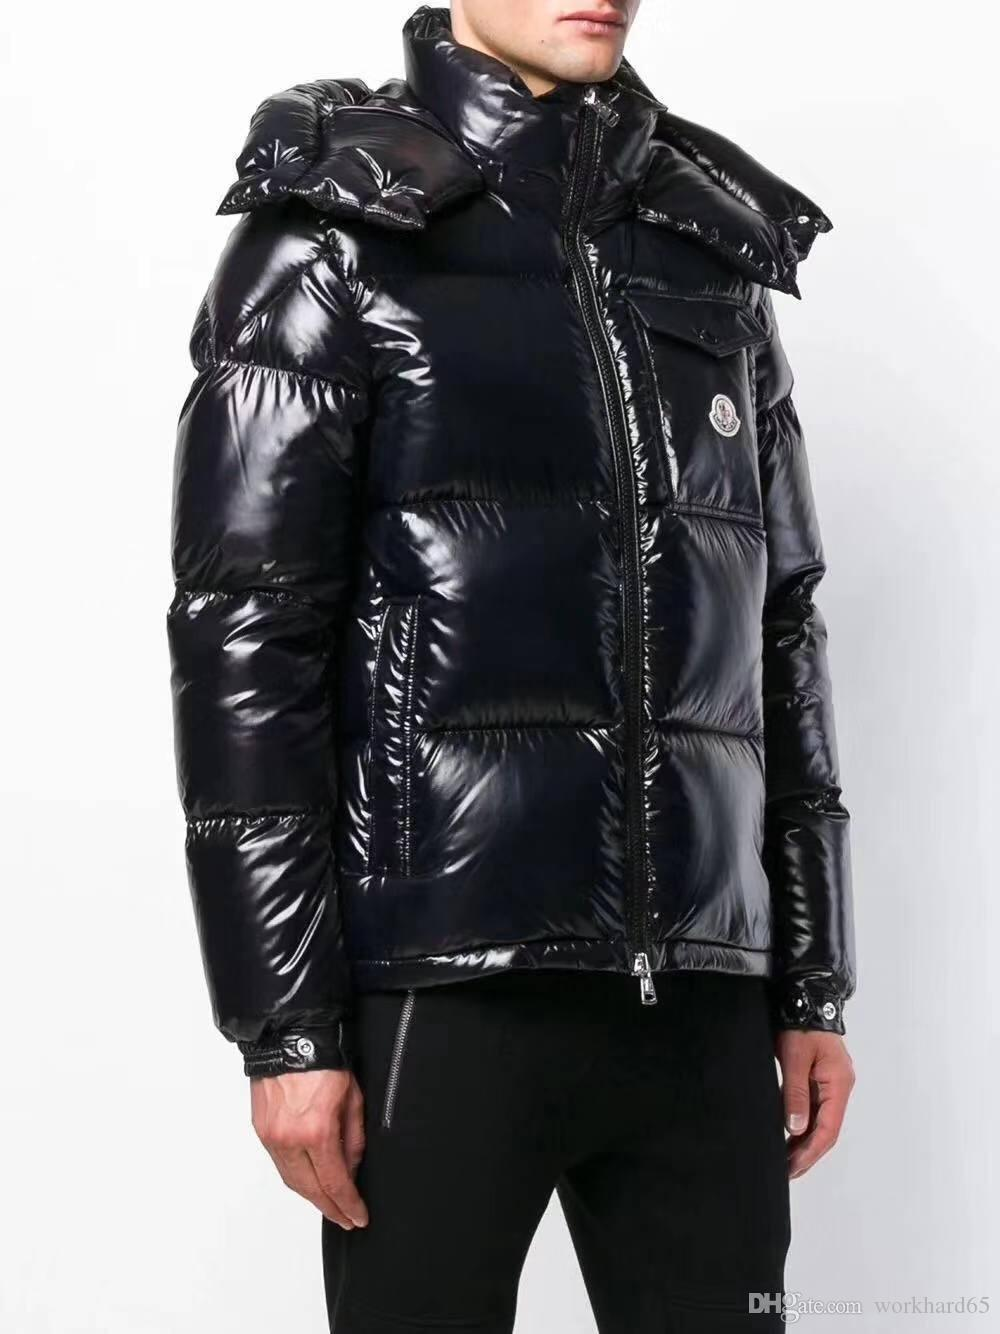 7863195e9 2019 Italian Brand Mens Winter Hooded Break Fashion Wild Moncler1 Down  Jacket Hooded Outdoor Warm Fashion Jacket DHL From Workhard65, &Price; | ...